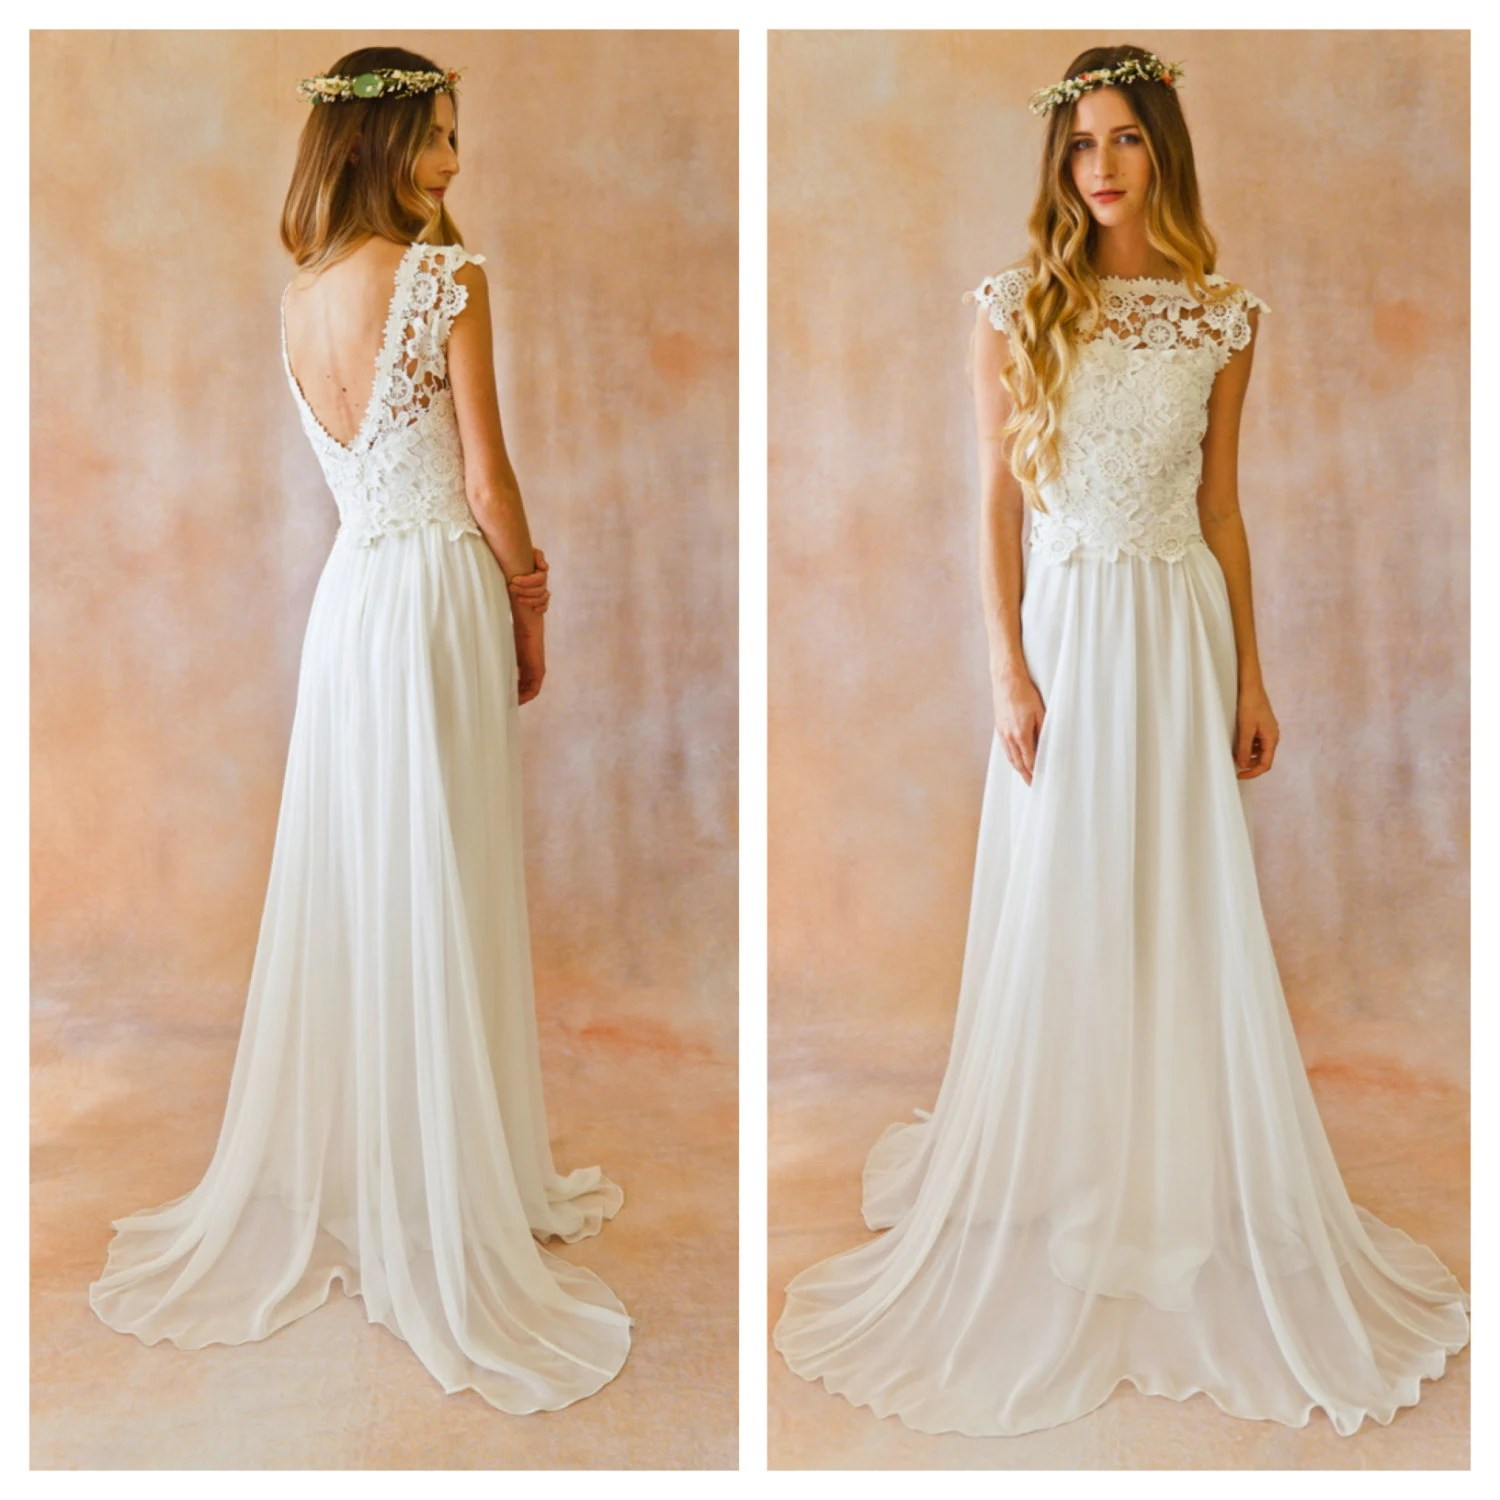 flowy wedding dress flowy wedding dresses Amy 2 Piece Lace Silk Chiffon Bohemian Wedding Dress OPEN BACK boho style crochet lace wedding dress Ivory or White Silk Skirt and Top